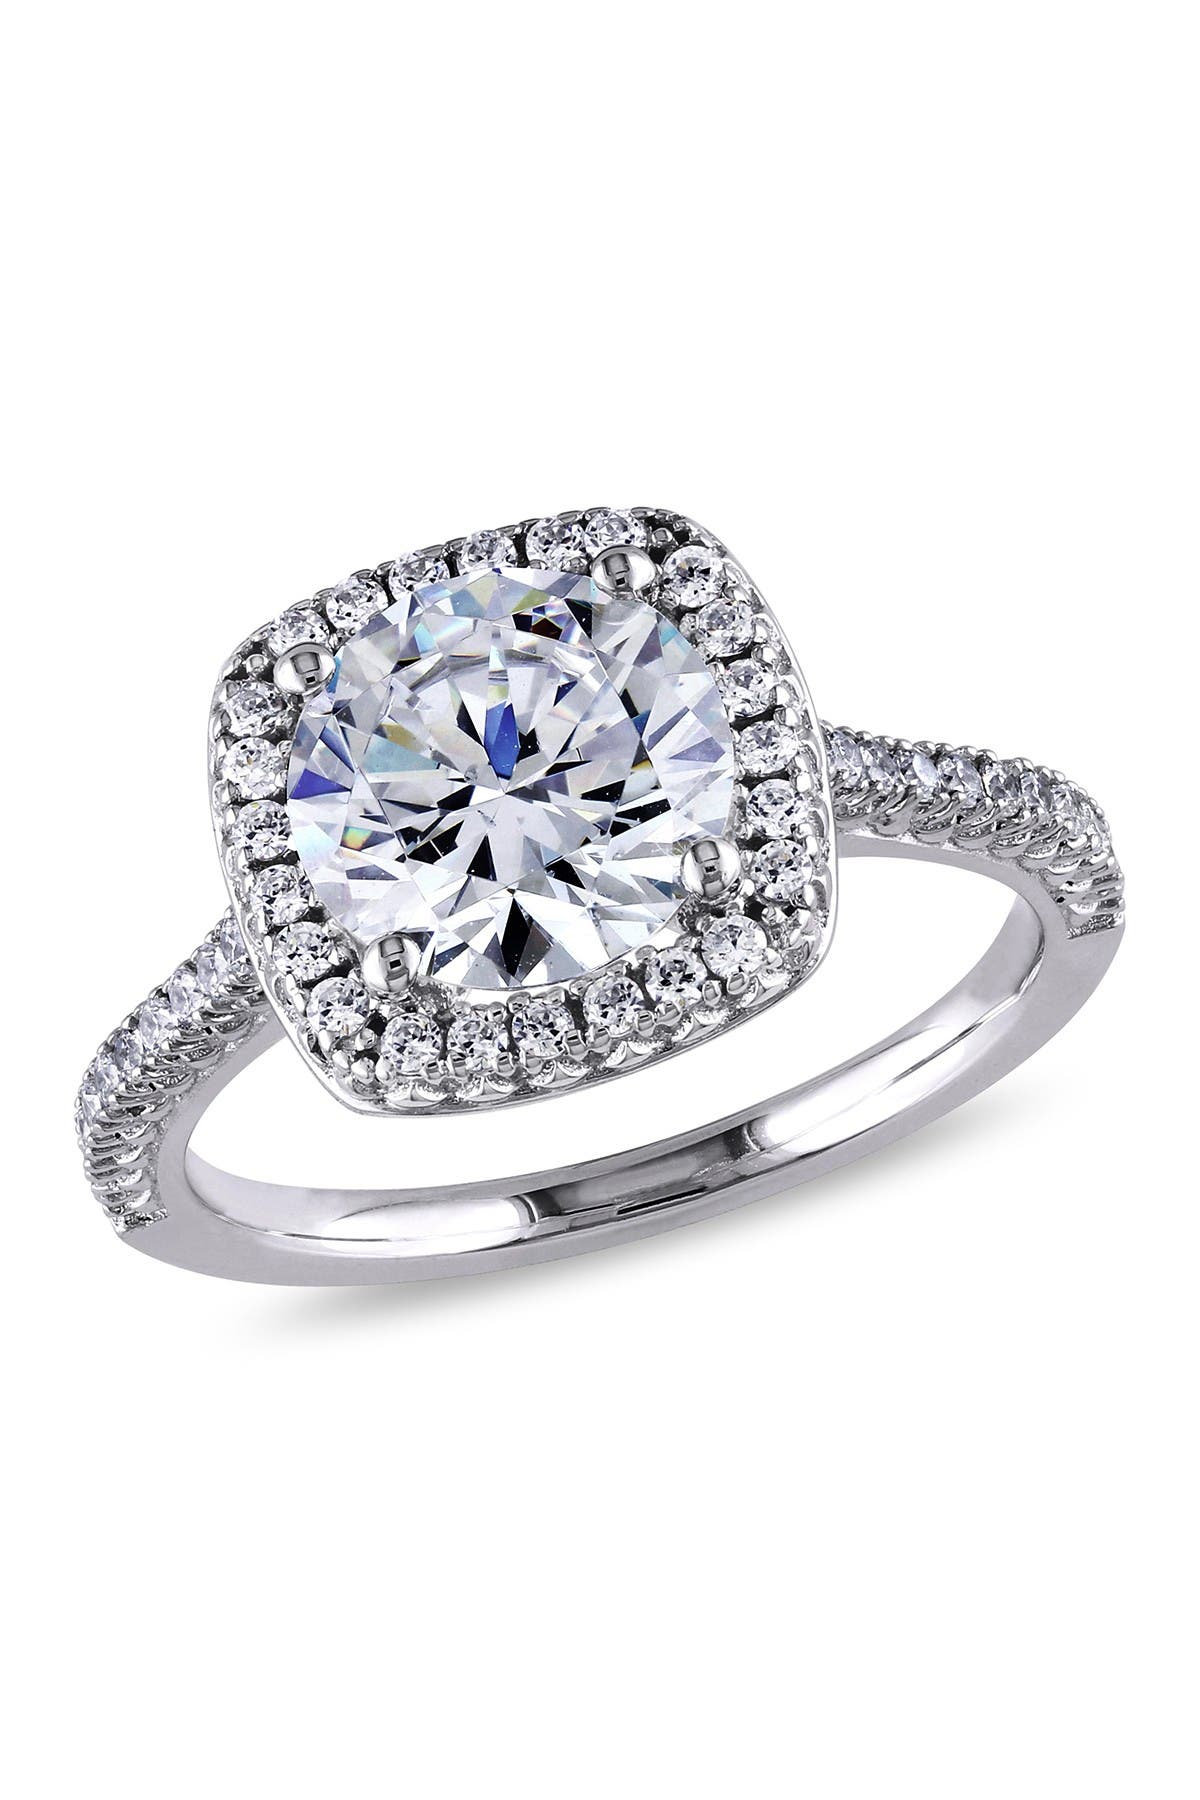 Image of Delmar Sterling Silver CZ Cushion Halo Ring